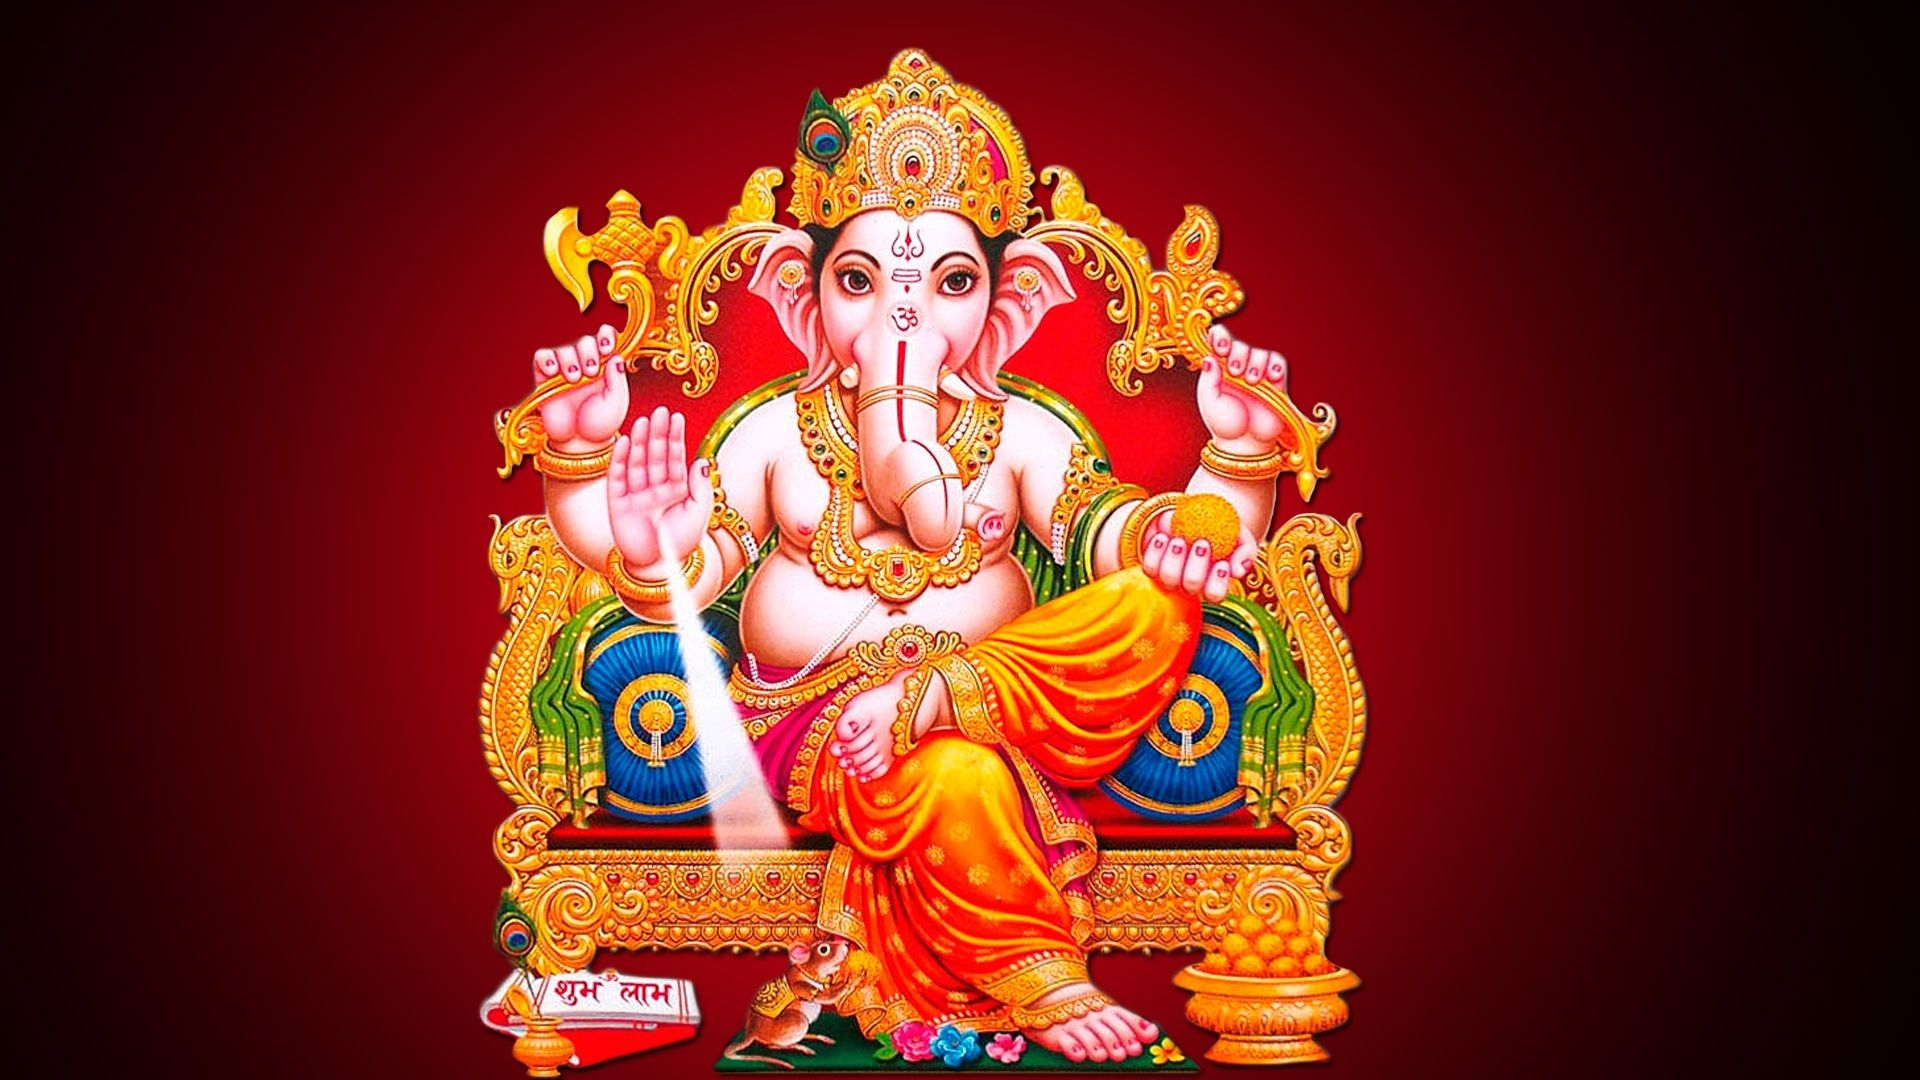 Ganesh chaturthi hd images wallpapers 2016 free download 4g ganesh chaturthi hd images wallpapers 2016 free download thecheapjerseys Choice Image